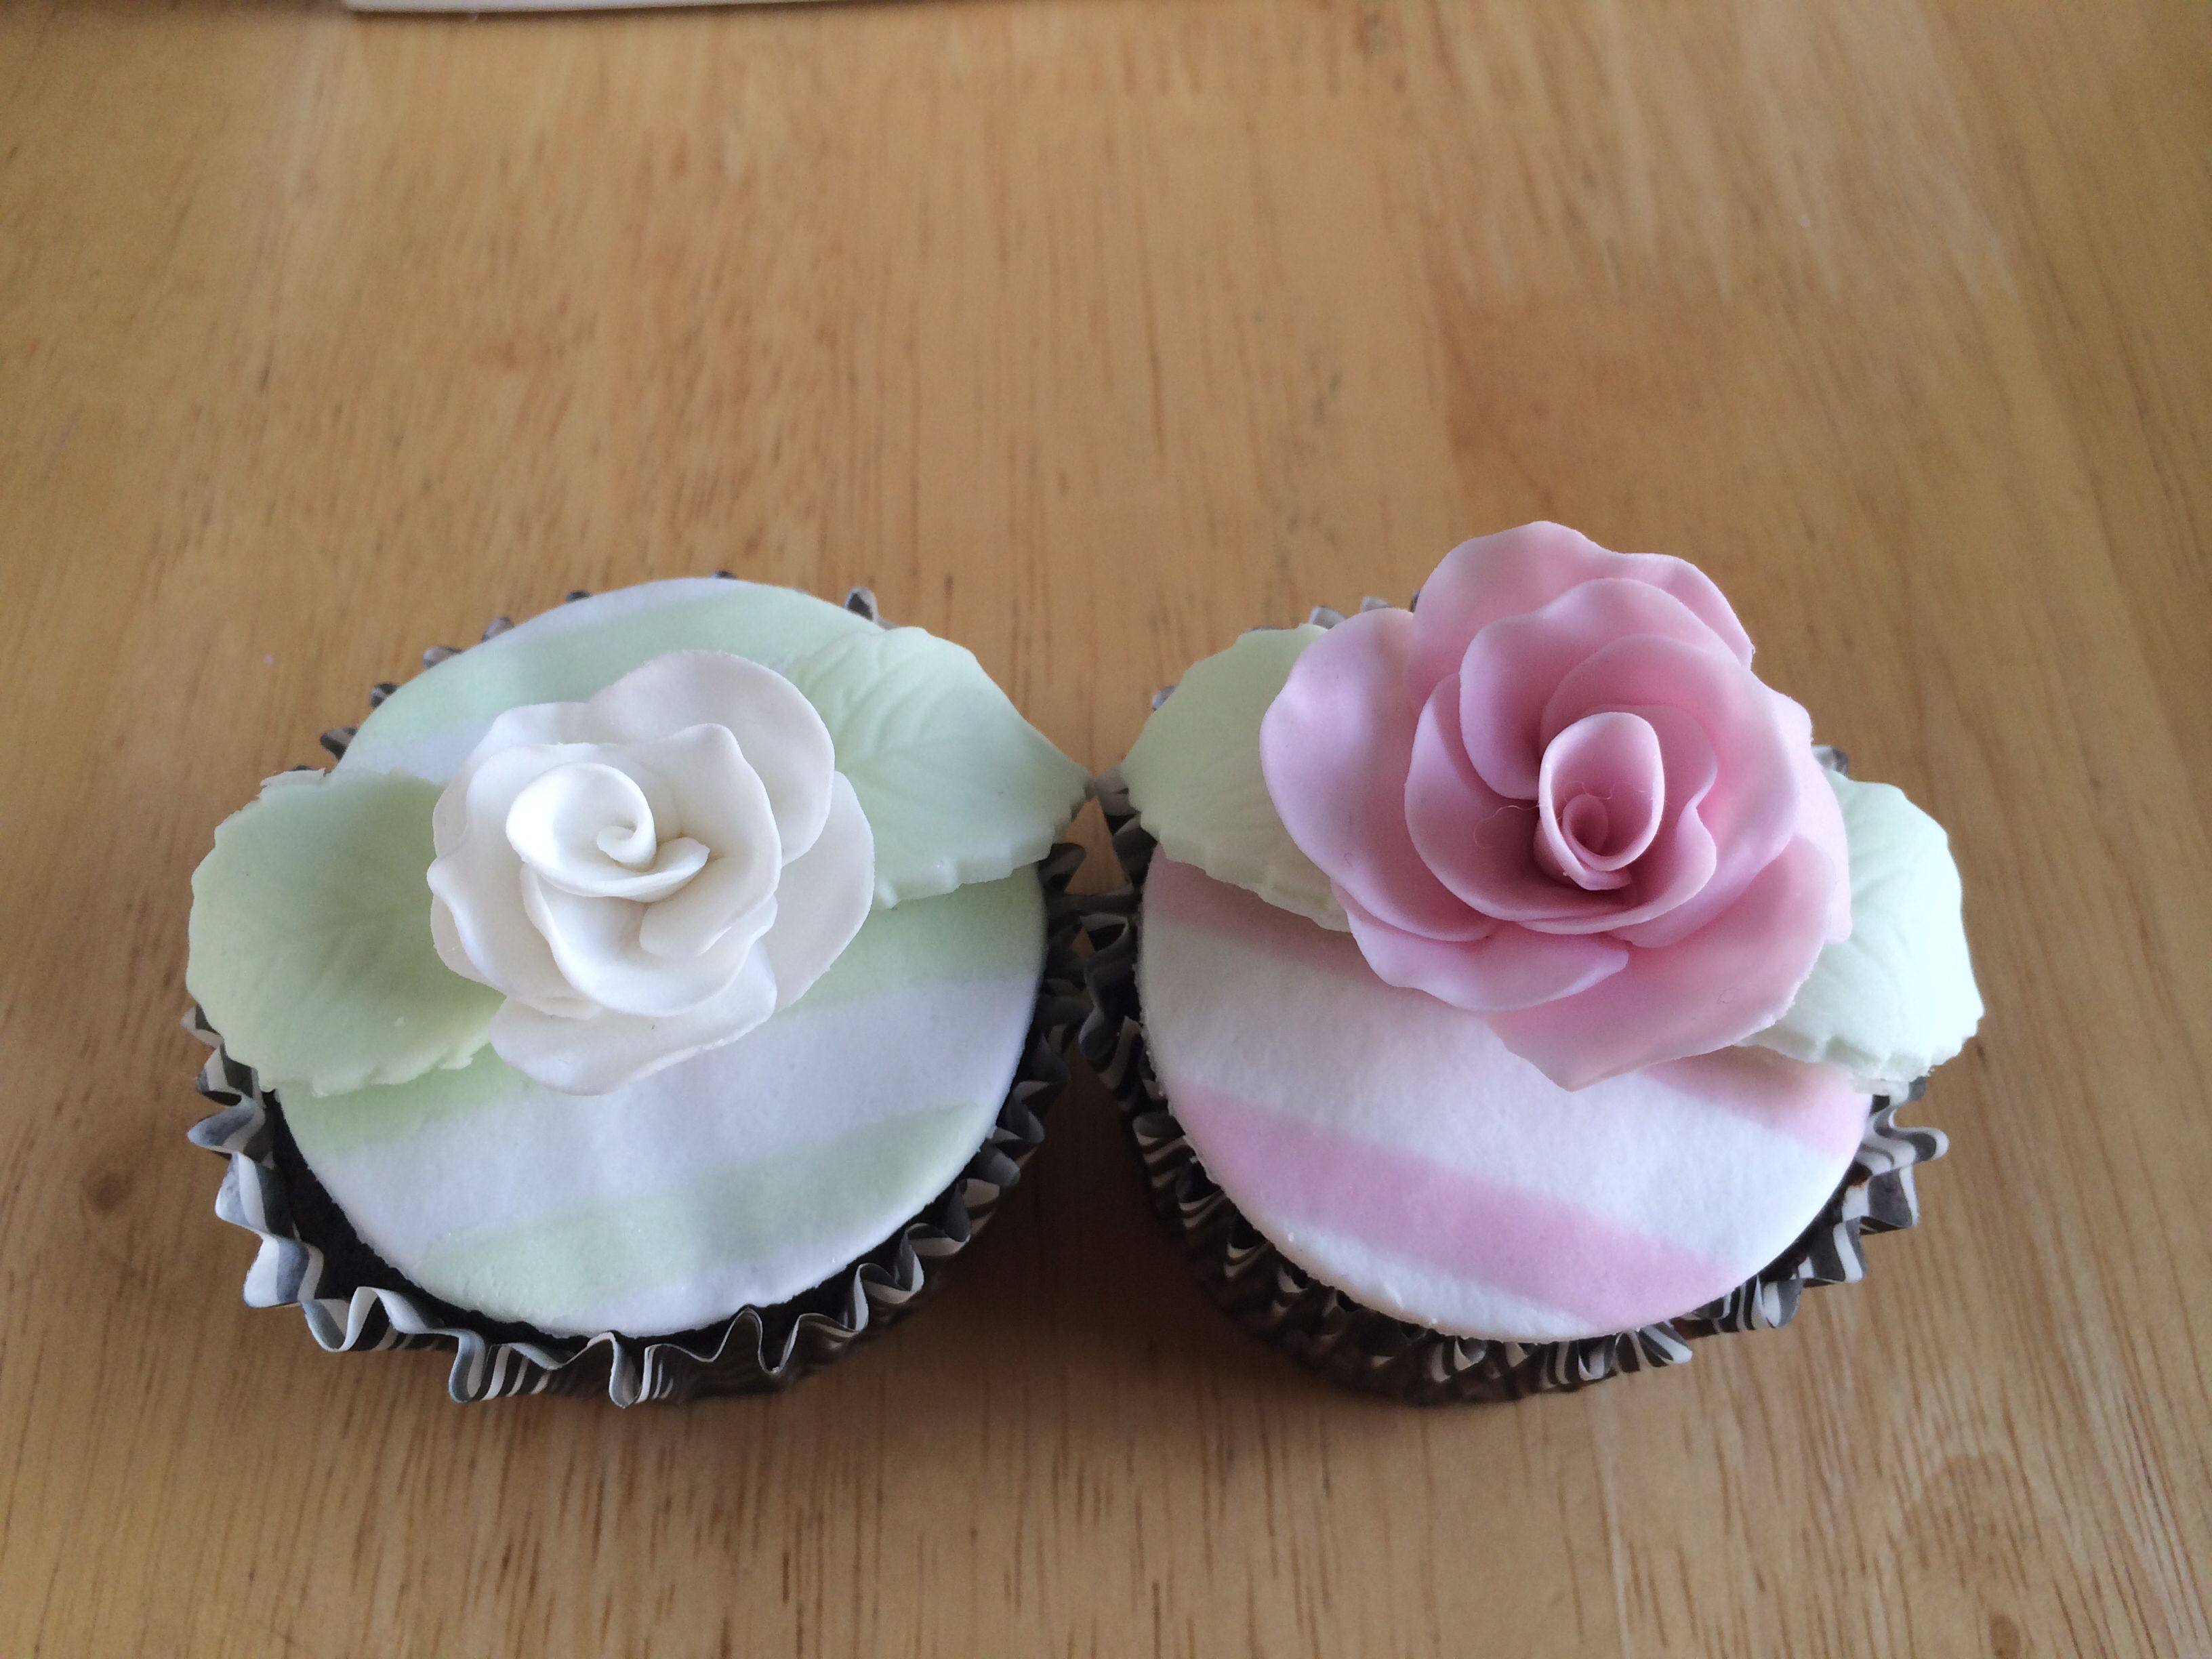 striped fondant with Mexican paste roses